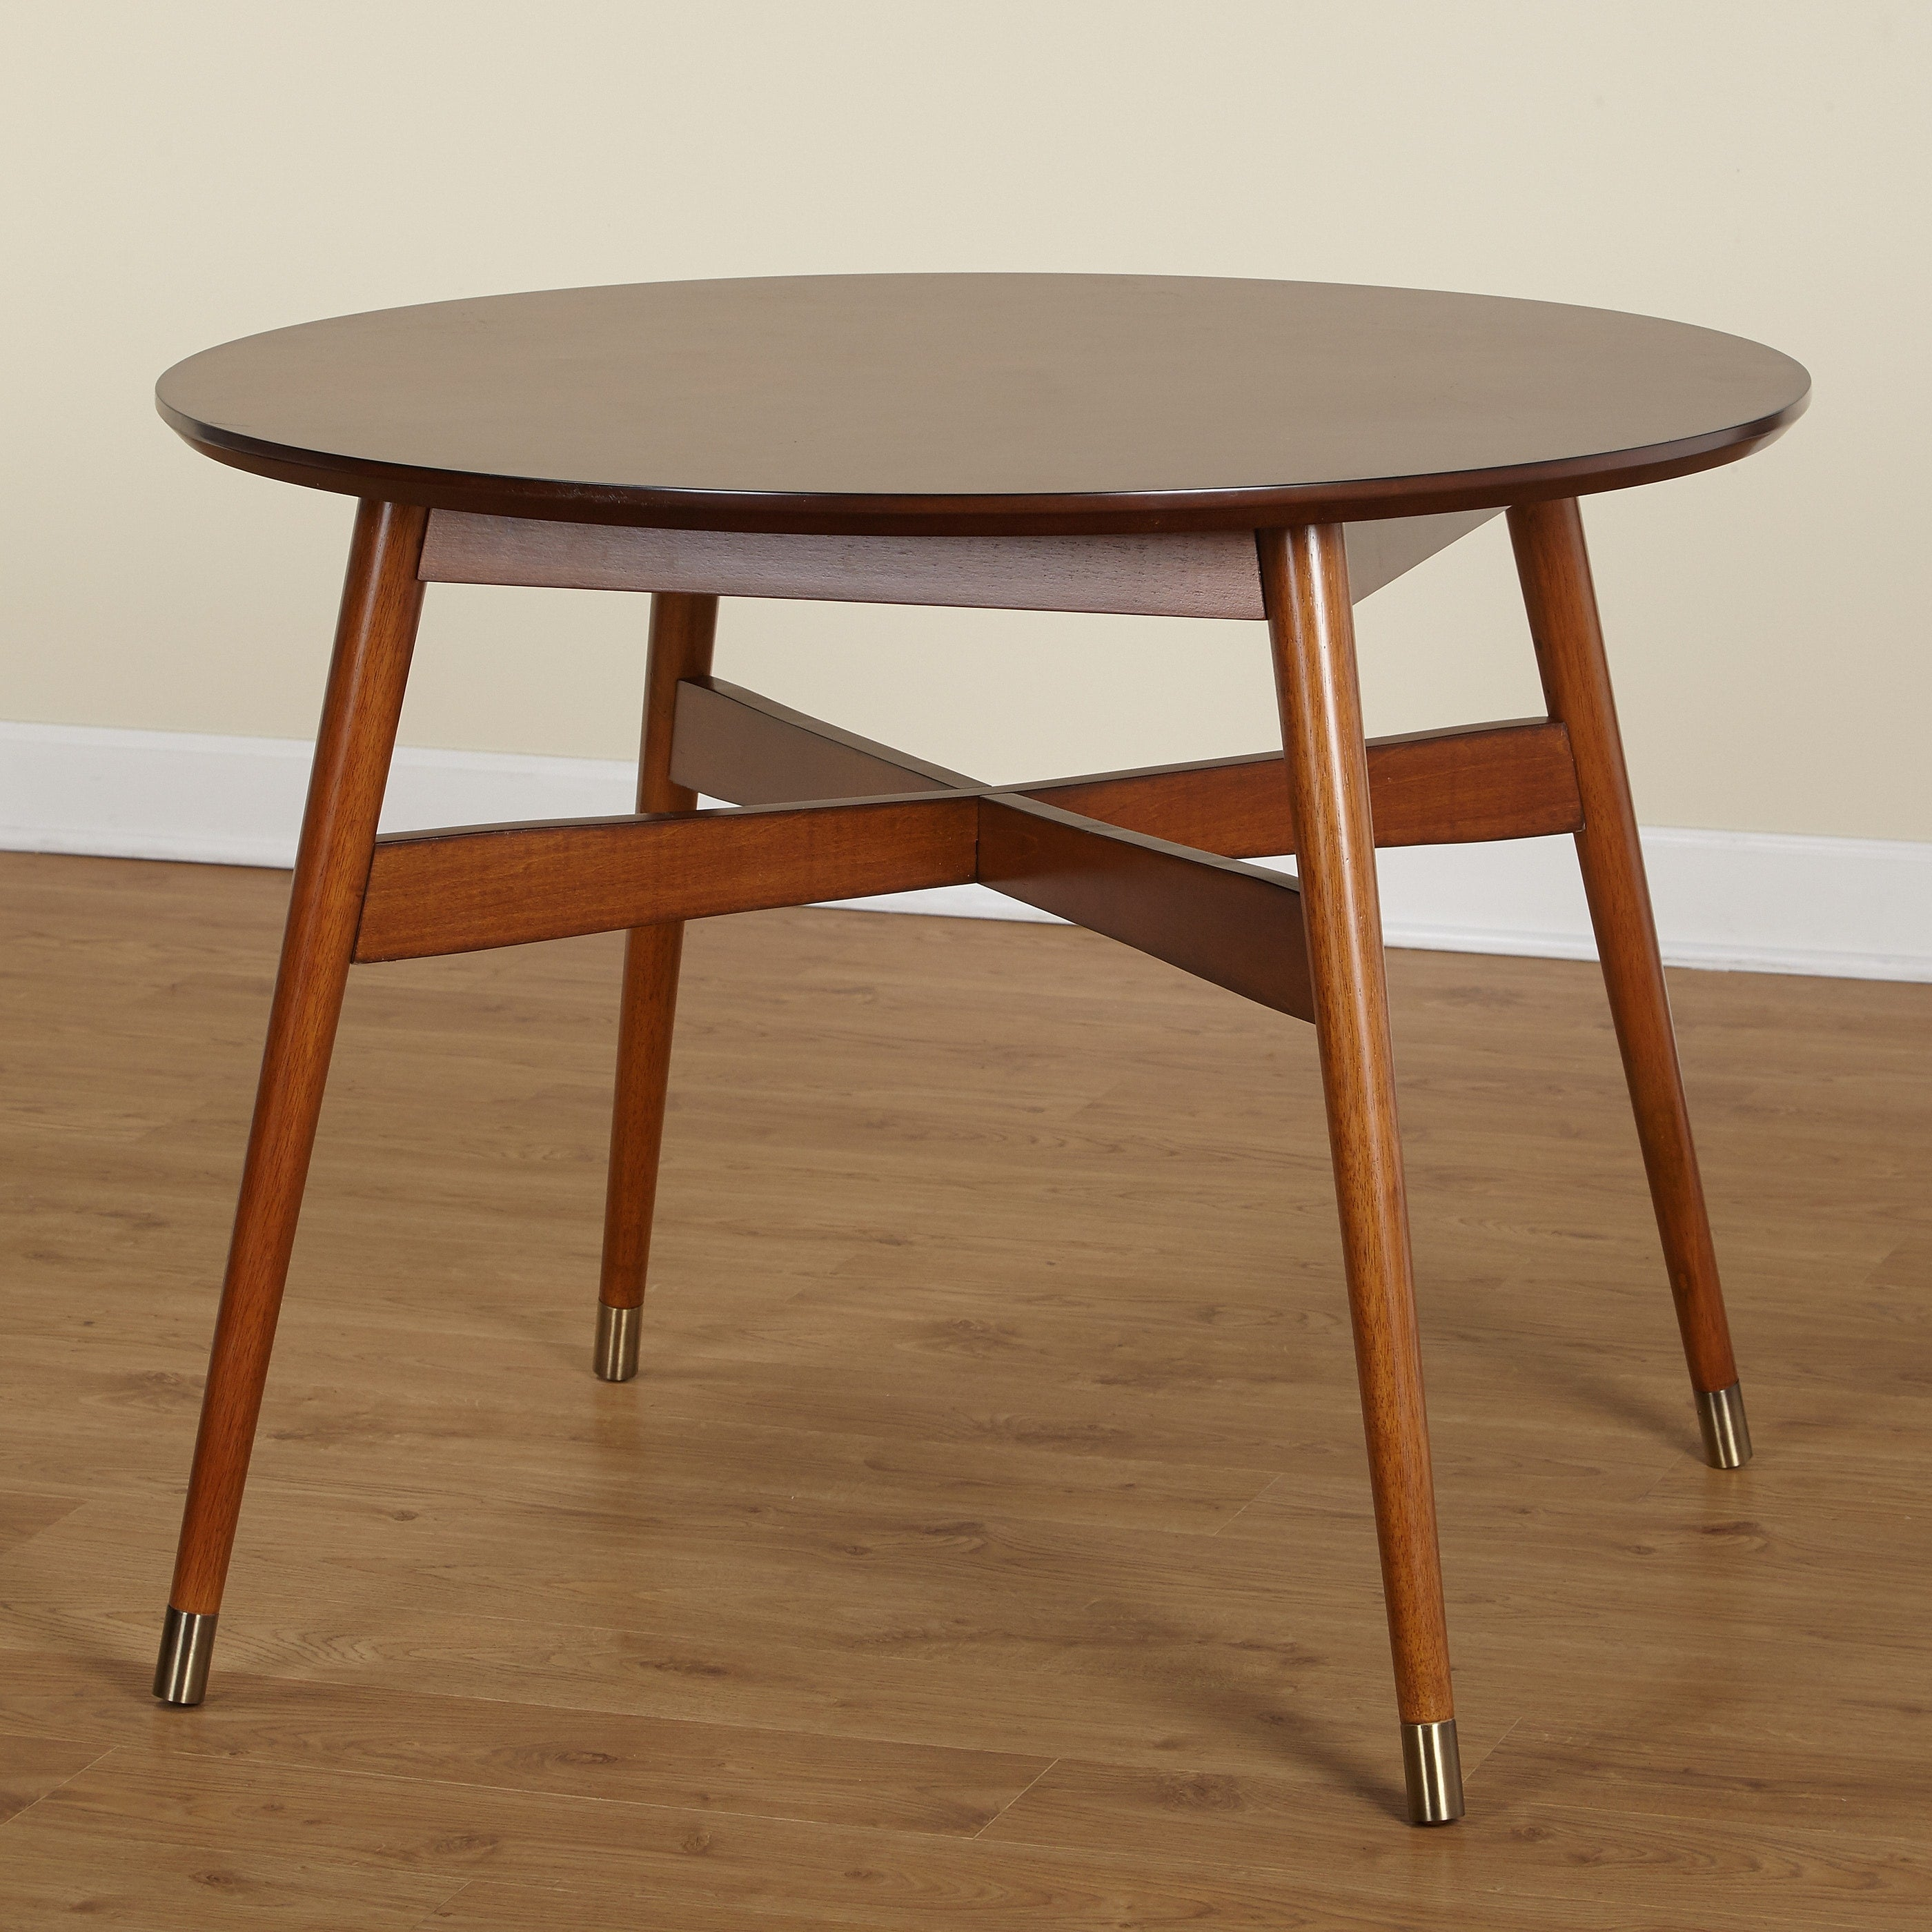 walnut century by table mid leaf dining products midcentury with co modern danish lane extension beautiful